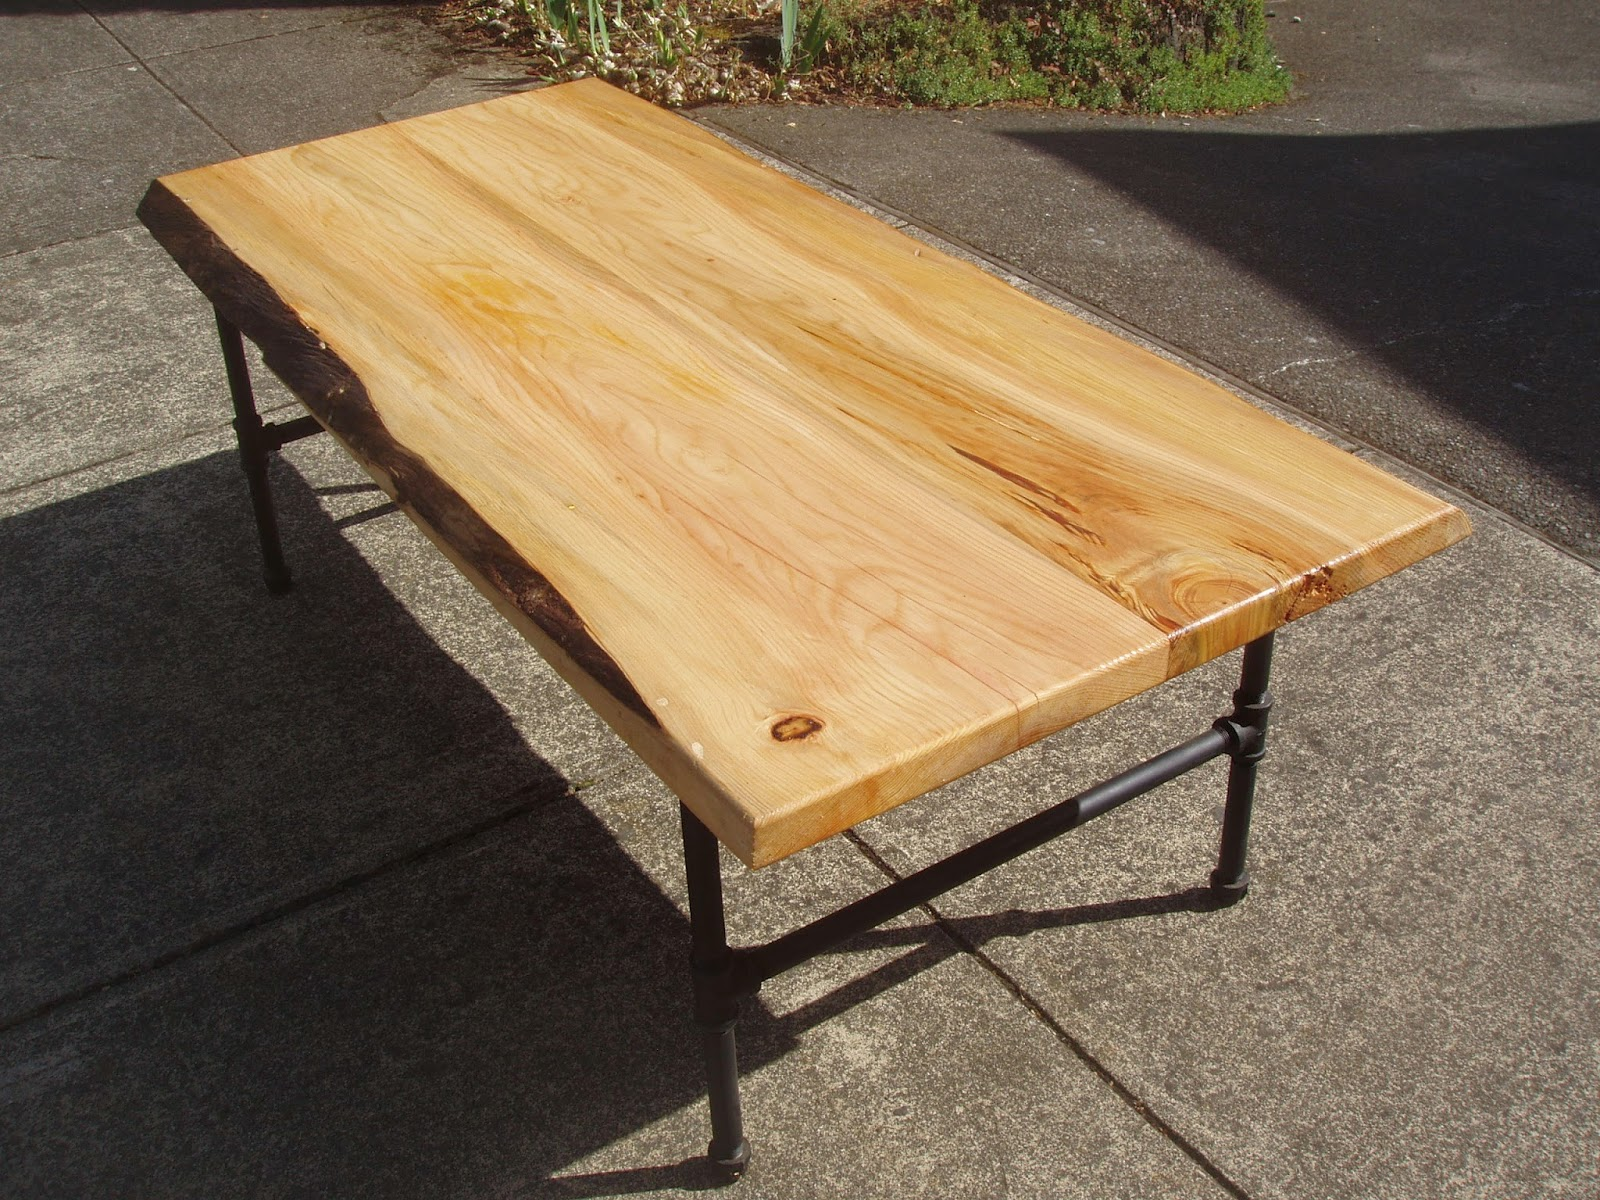 Driftedge Woodworking Live Edge Cedar Coffee Table With Steel Pipe Legs Sold